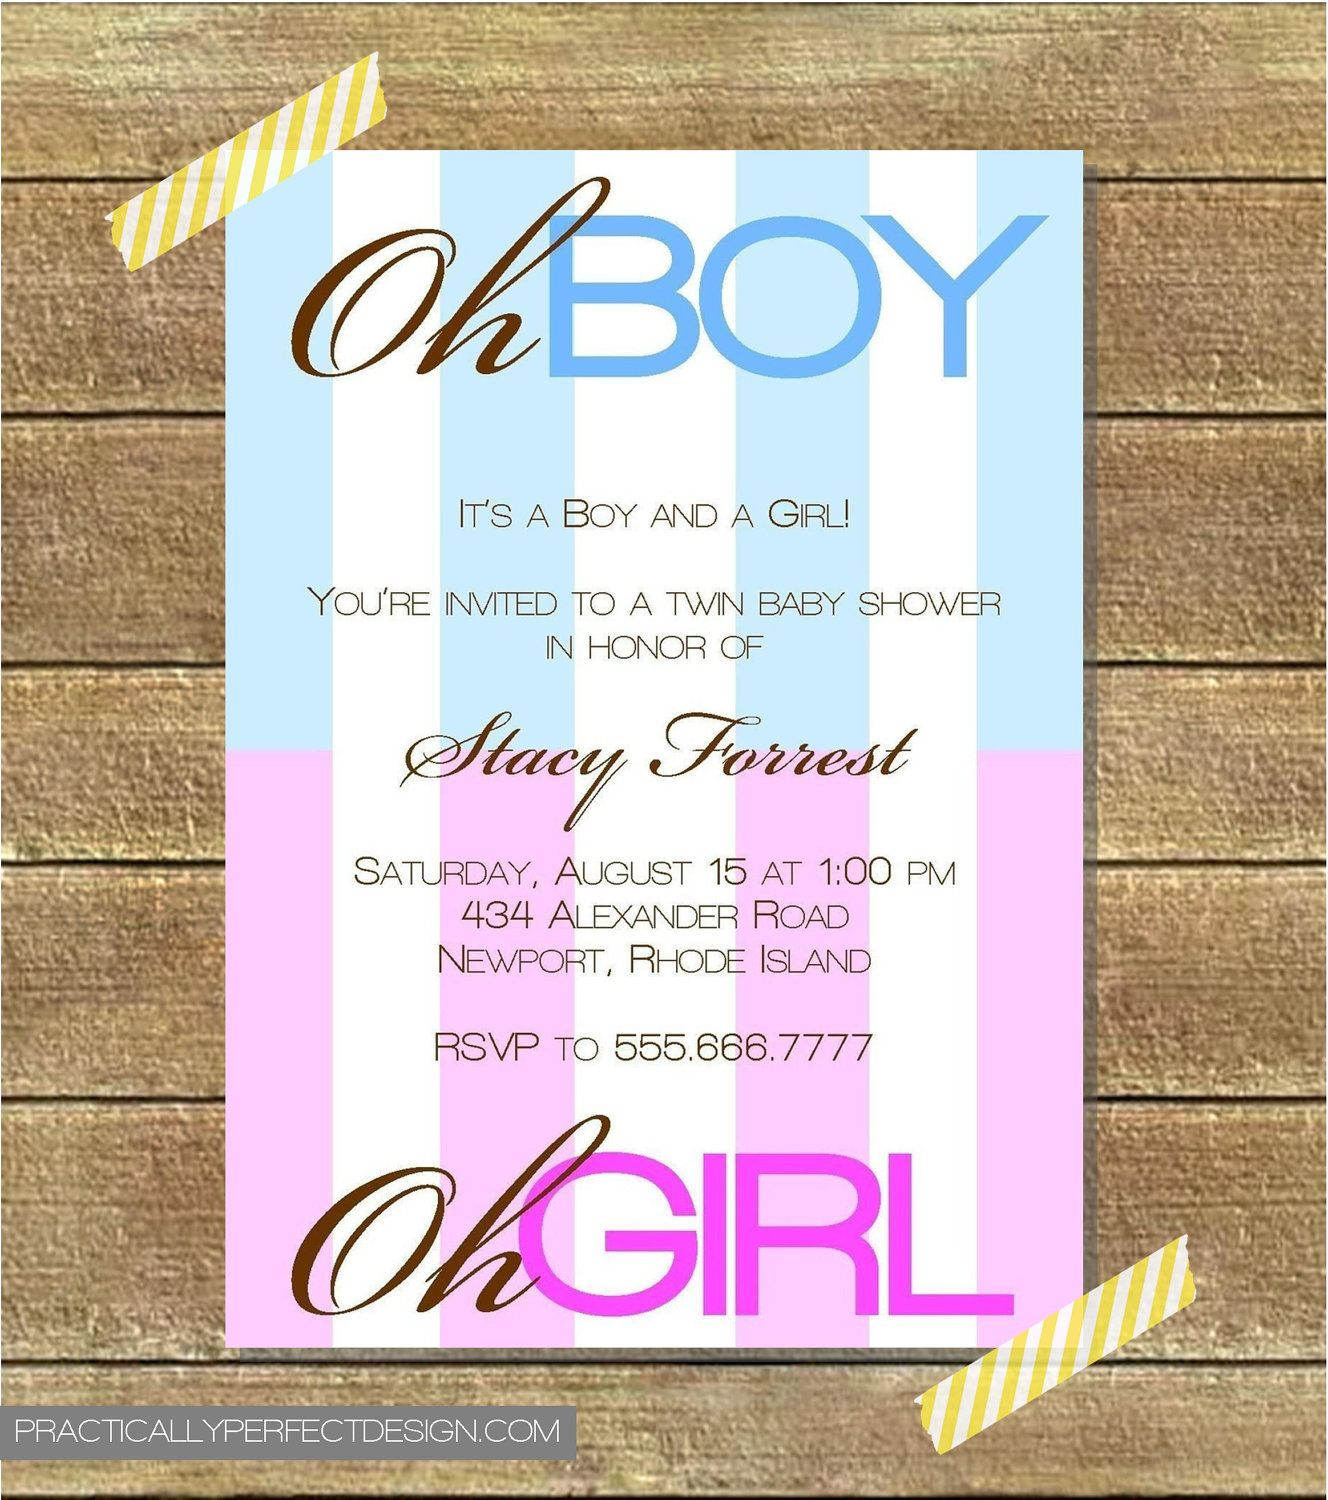 twin baby shower invitation, boy and girl.  baby shower ideas, Baby shower invitation